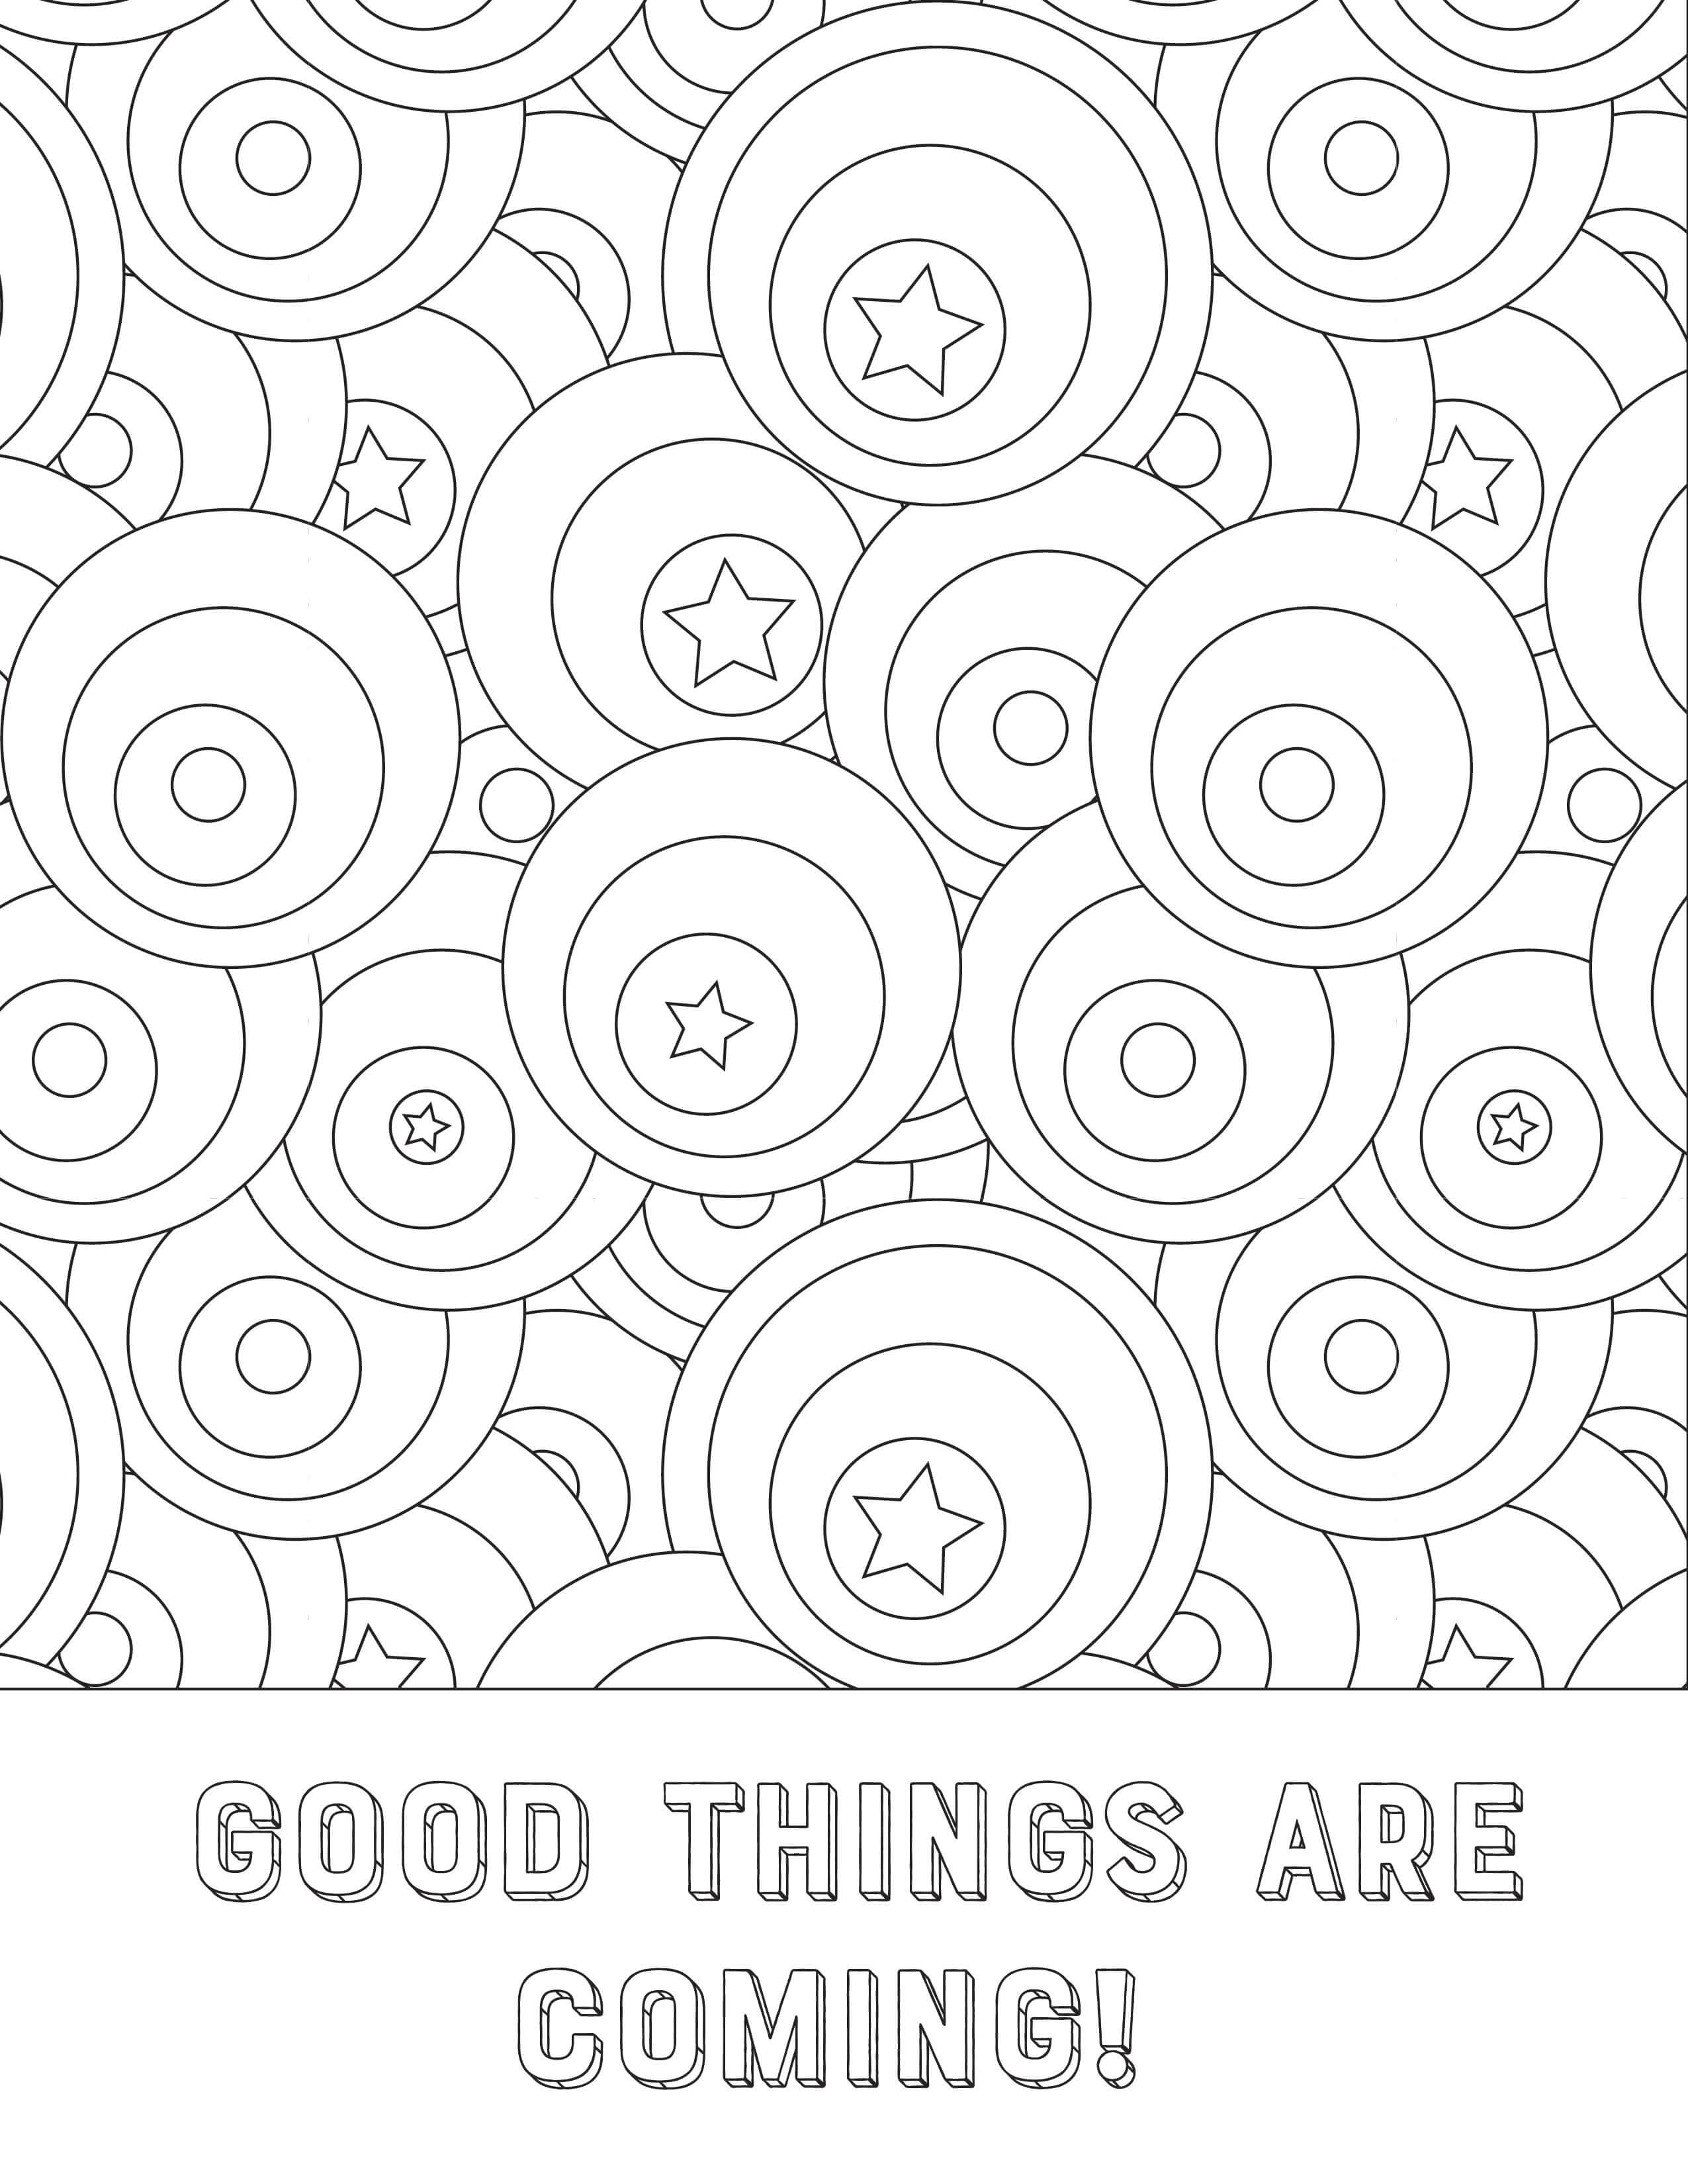 Free New Year Coloring Pages Www Teepeegirl Com Coloring Things